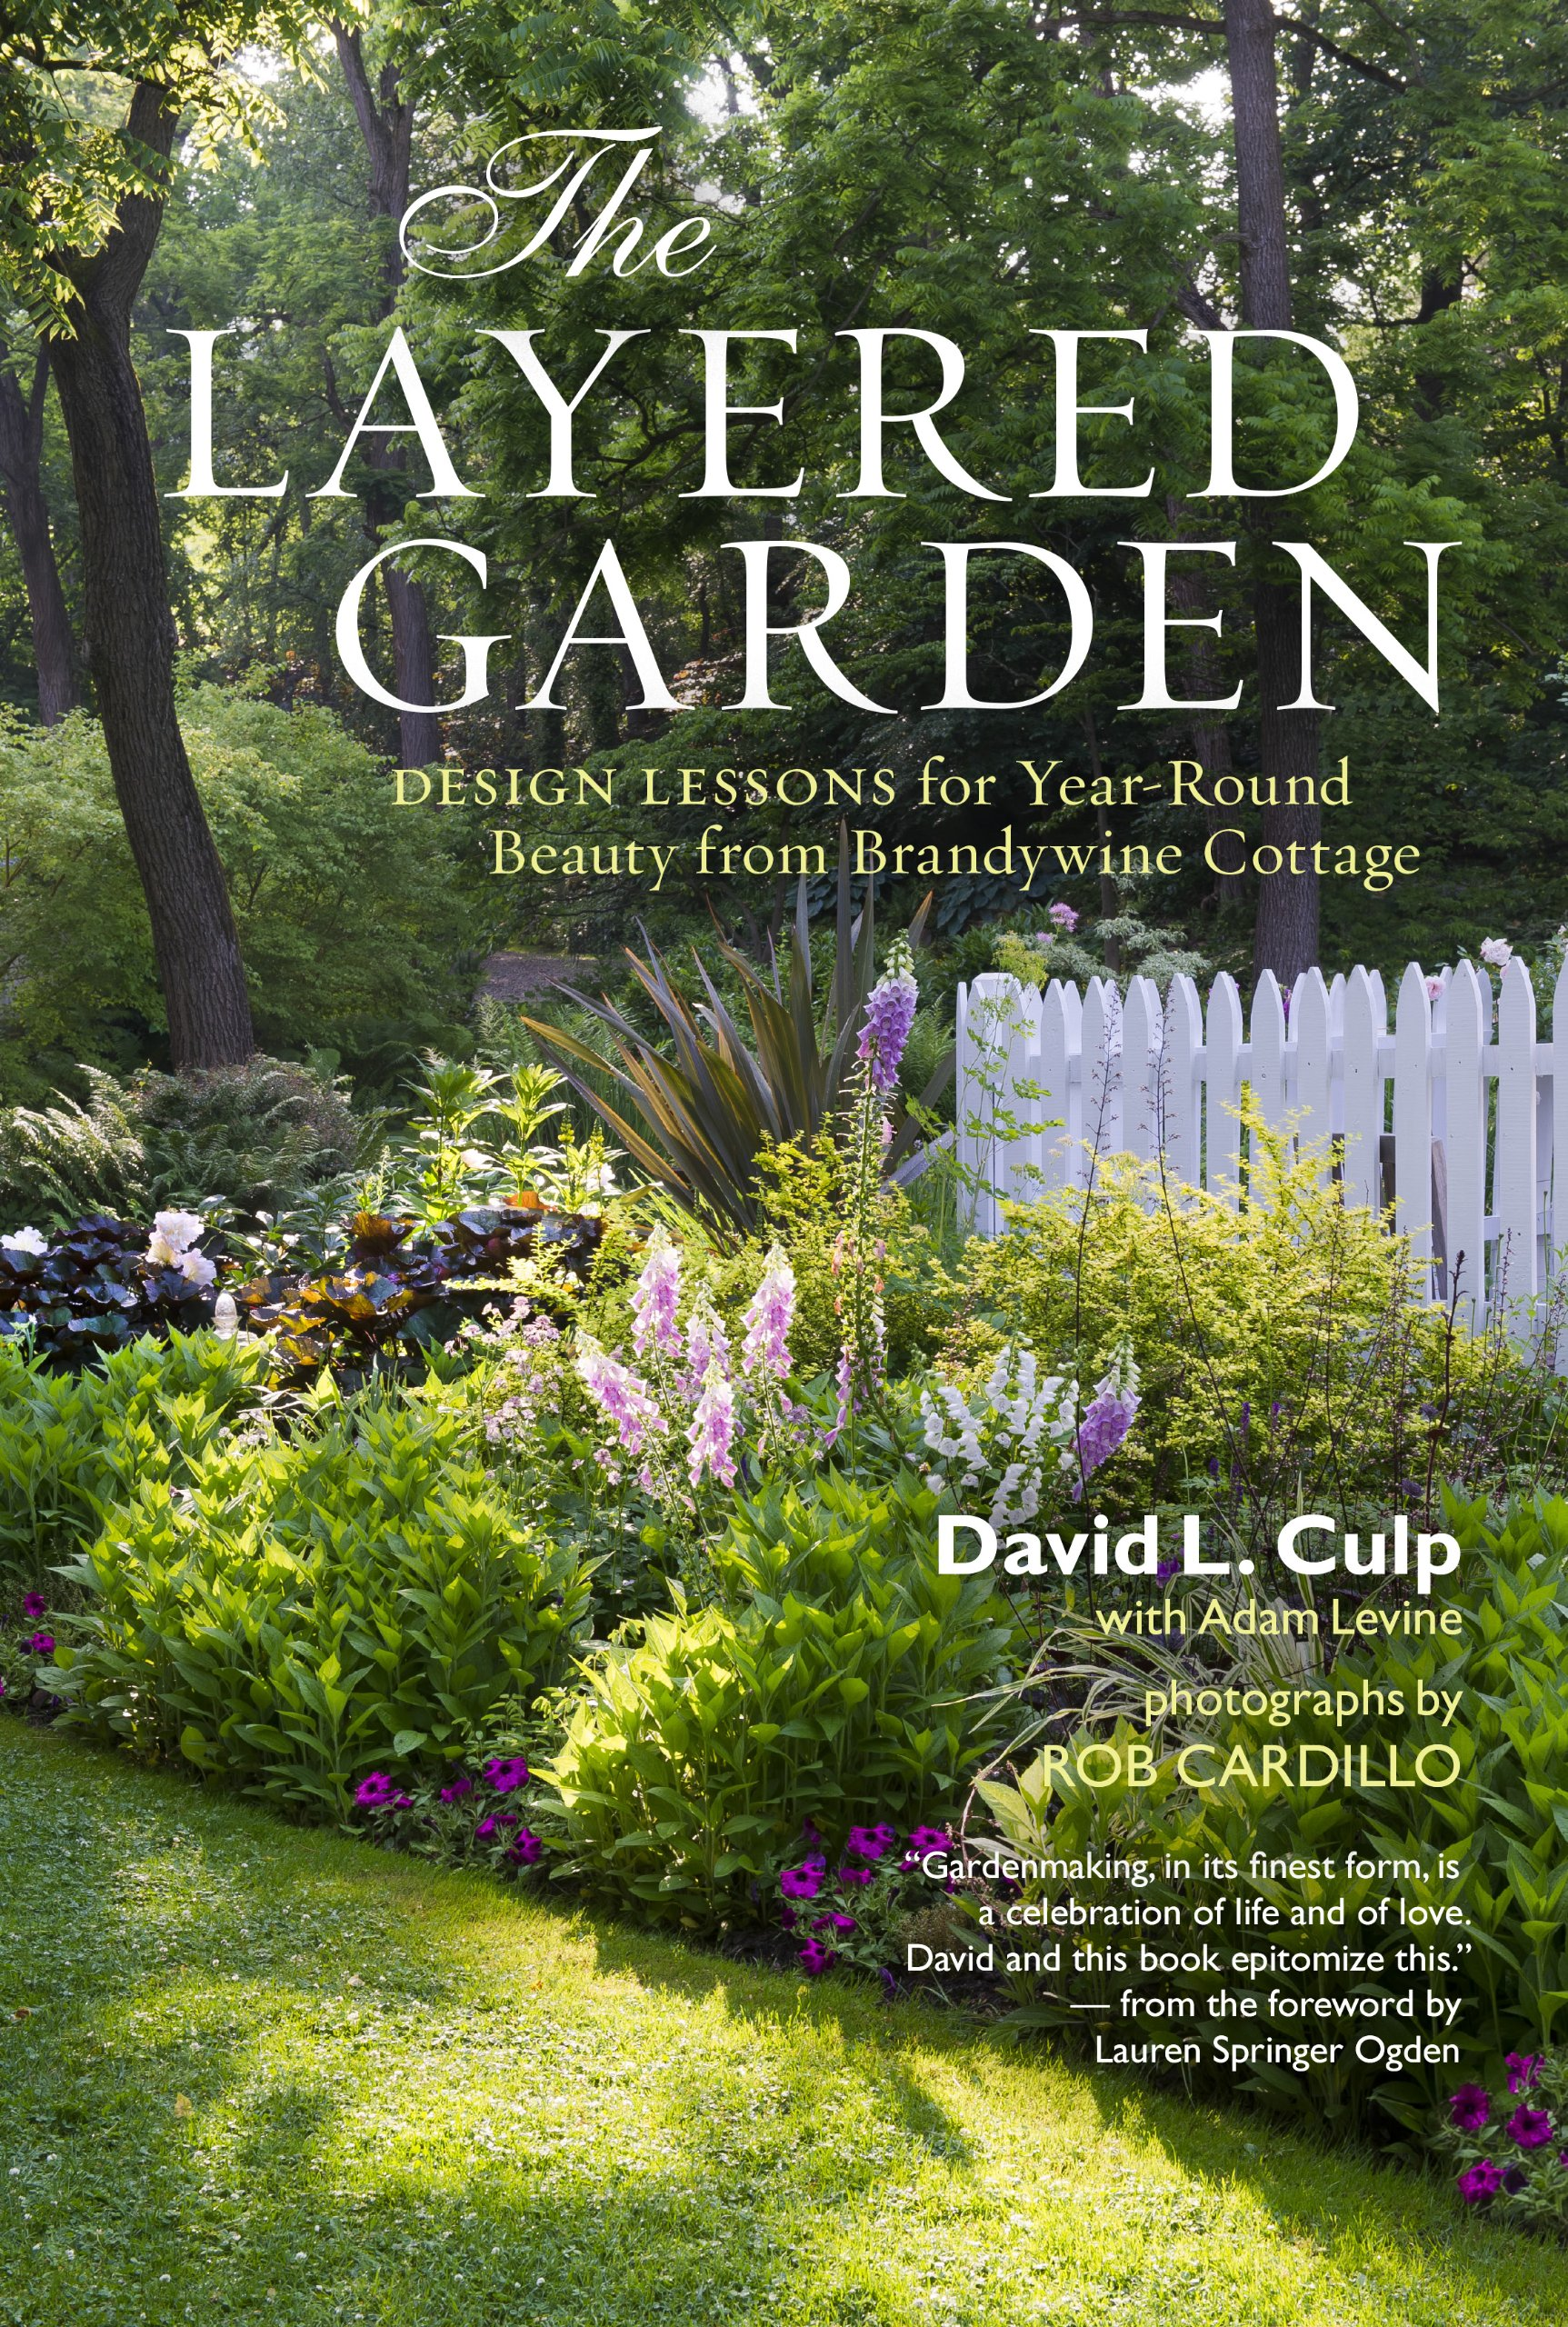 Great The Layered Garden: Design Lessons For Year Round Beauty From Brandywine  Cottage: David L. Culp, Adam Levine, Rob Cardillo: 9781604692365:  Amazon.com: Books